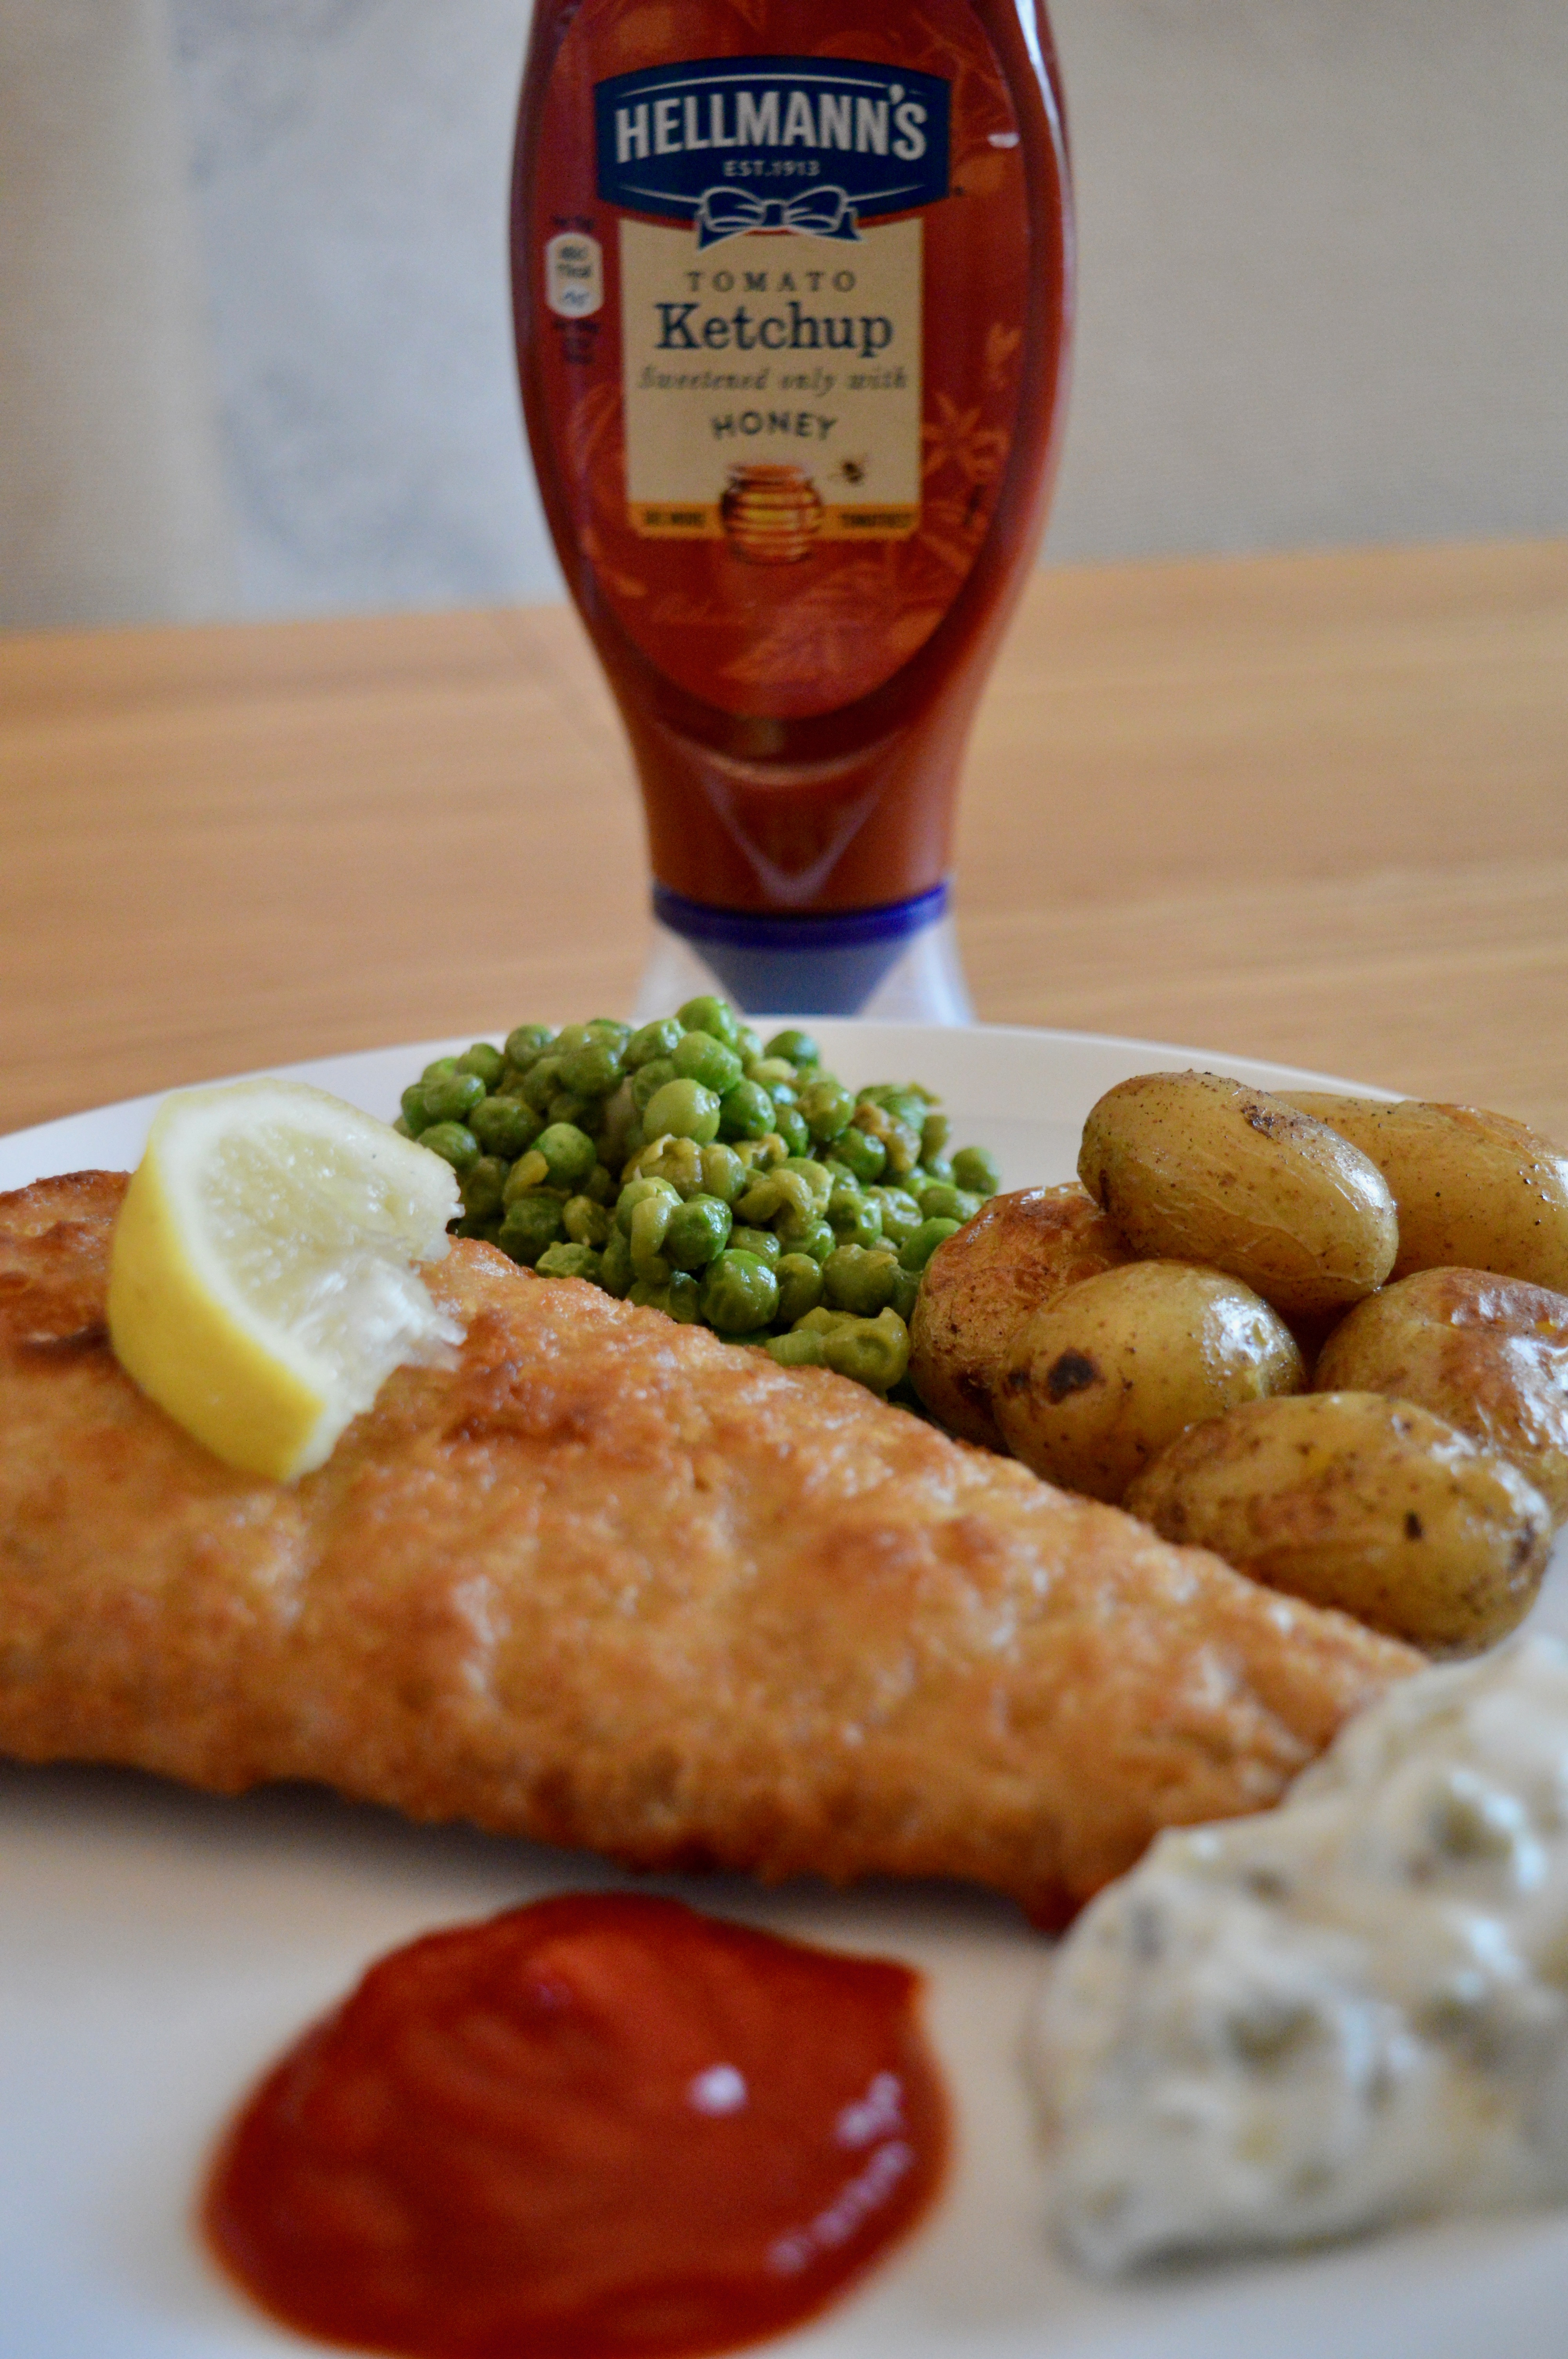 Hellmann's -tomato-ketchup-with-honey-fish-and-chips-elle-blonde-luxury-lifestyle-blog